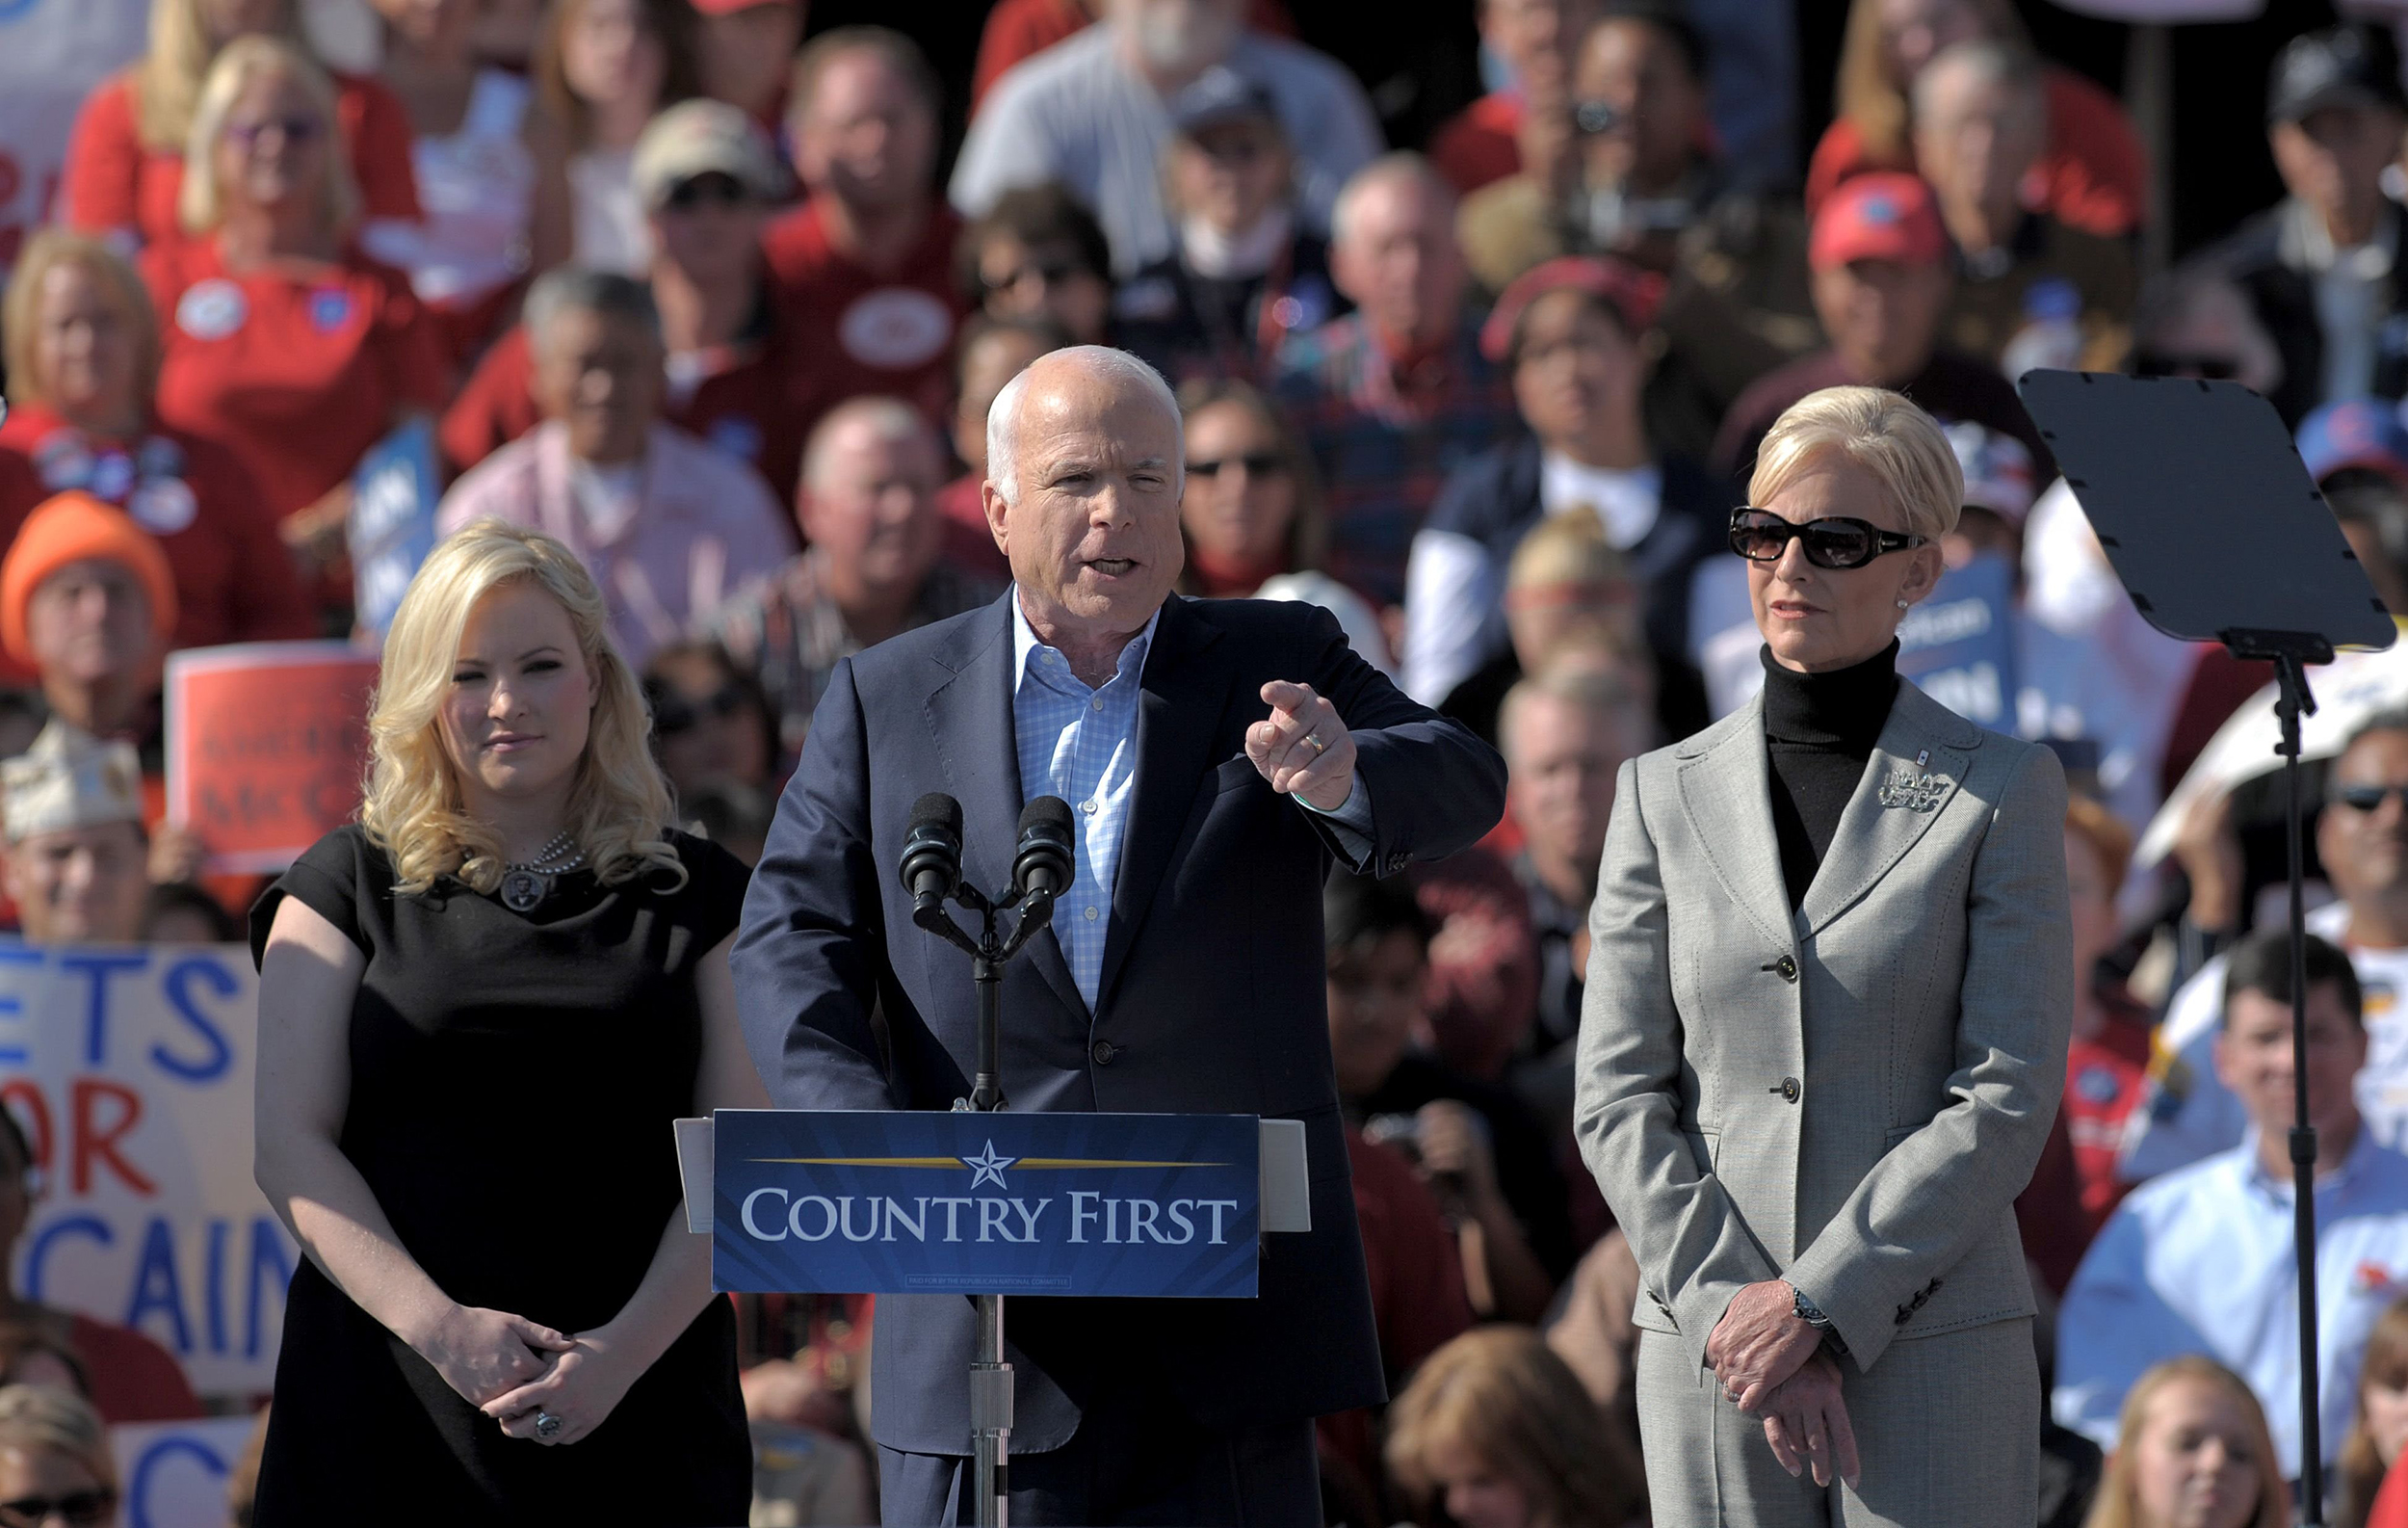 John-McCain's-family-slams-GOP-group-for-using-footage-of-him-in-ads